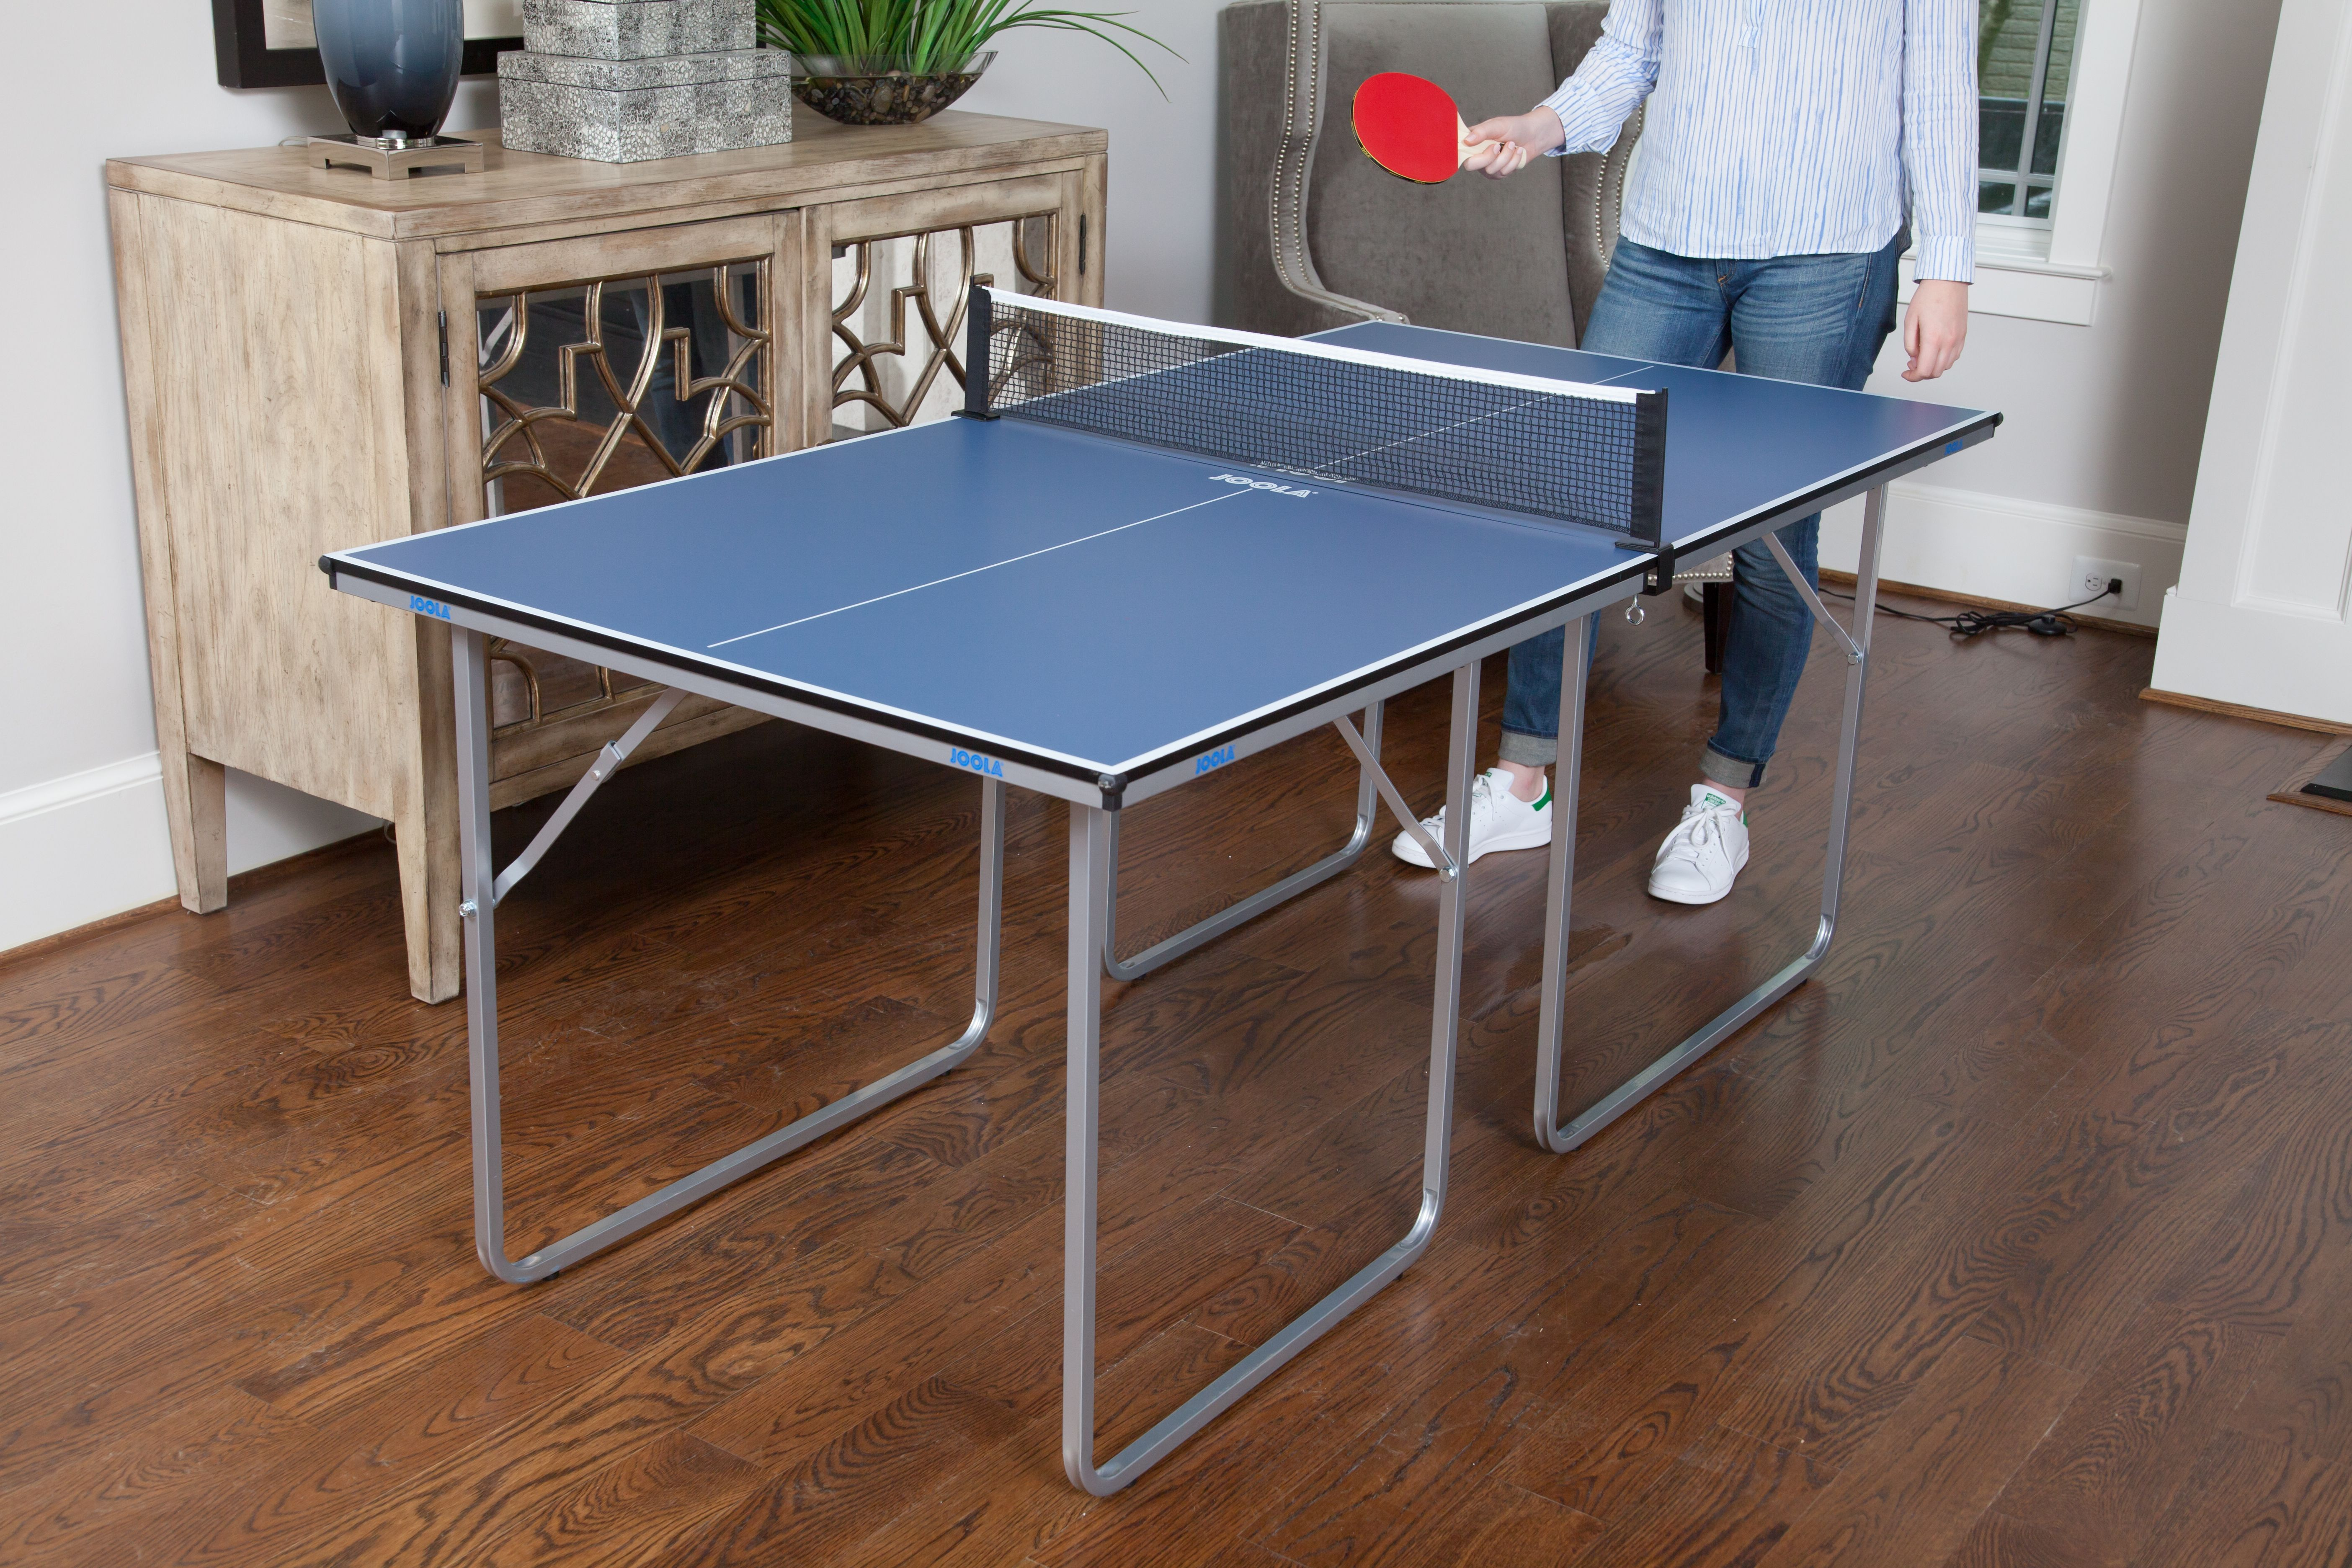 Midsize Sport Table Tennis Table In 2020 Table Unique Tables